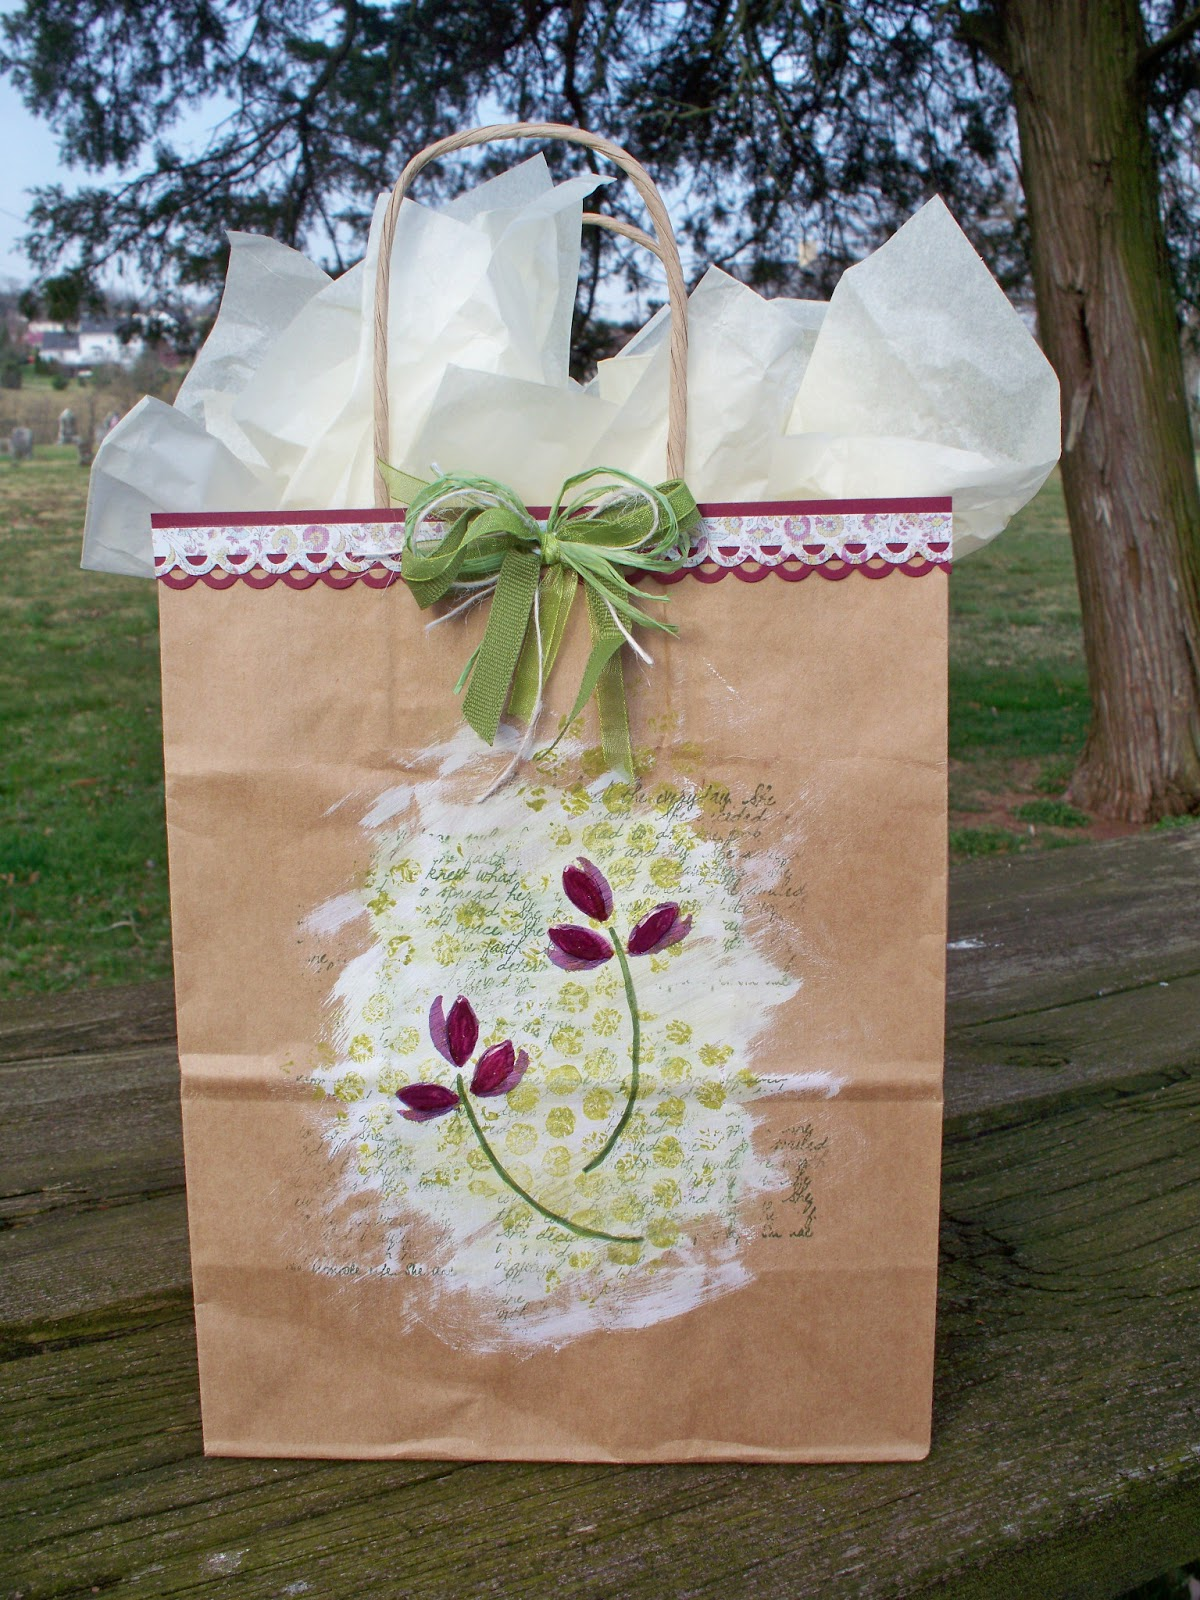 Eclectic paperie decorate a gift bag